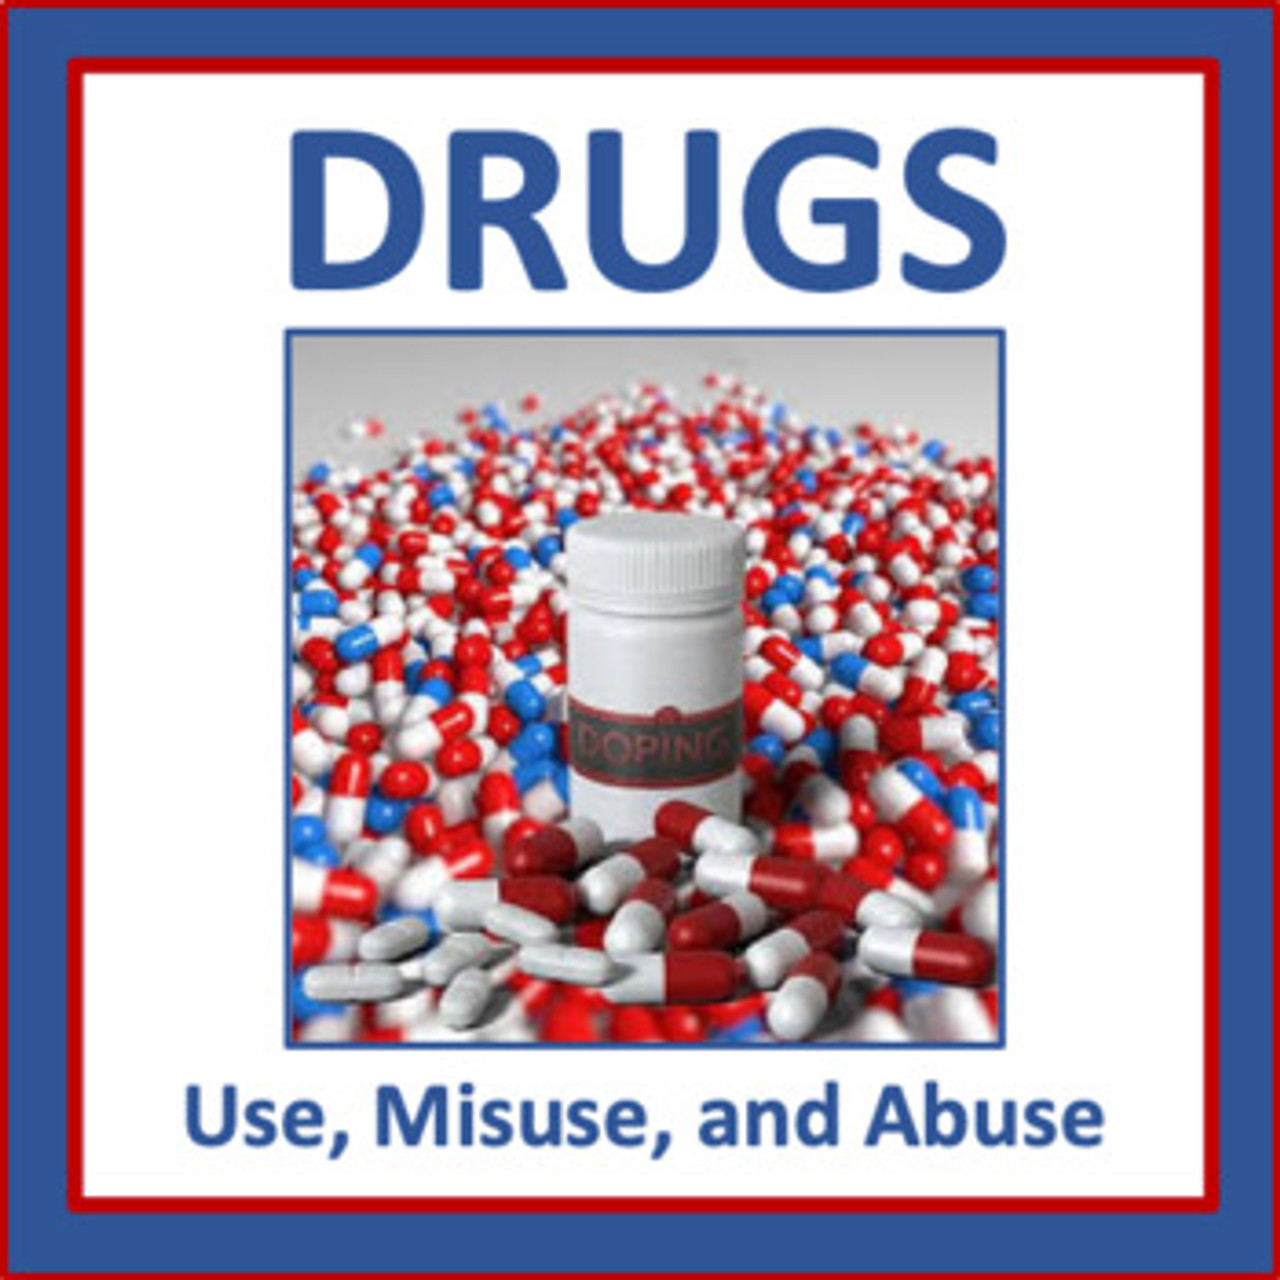 Drugs: Use, Misuse, and Abuse